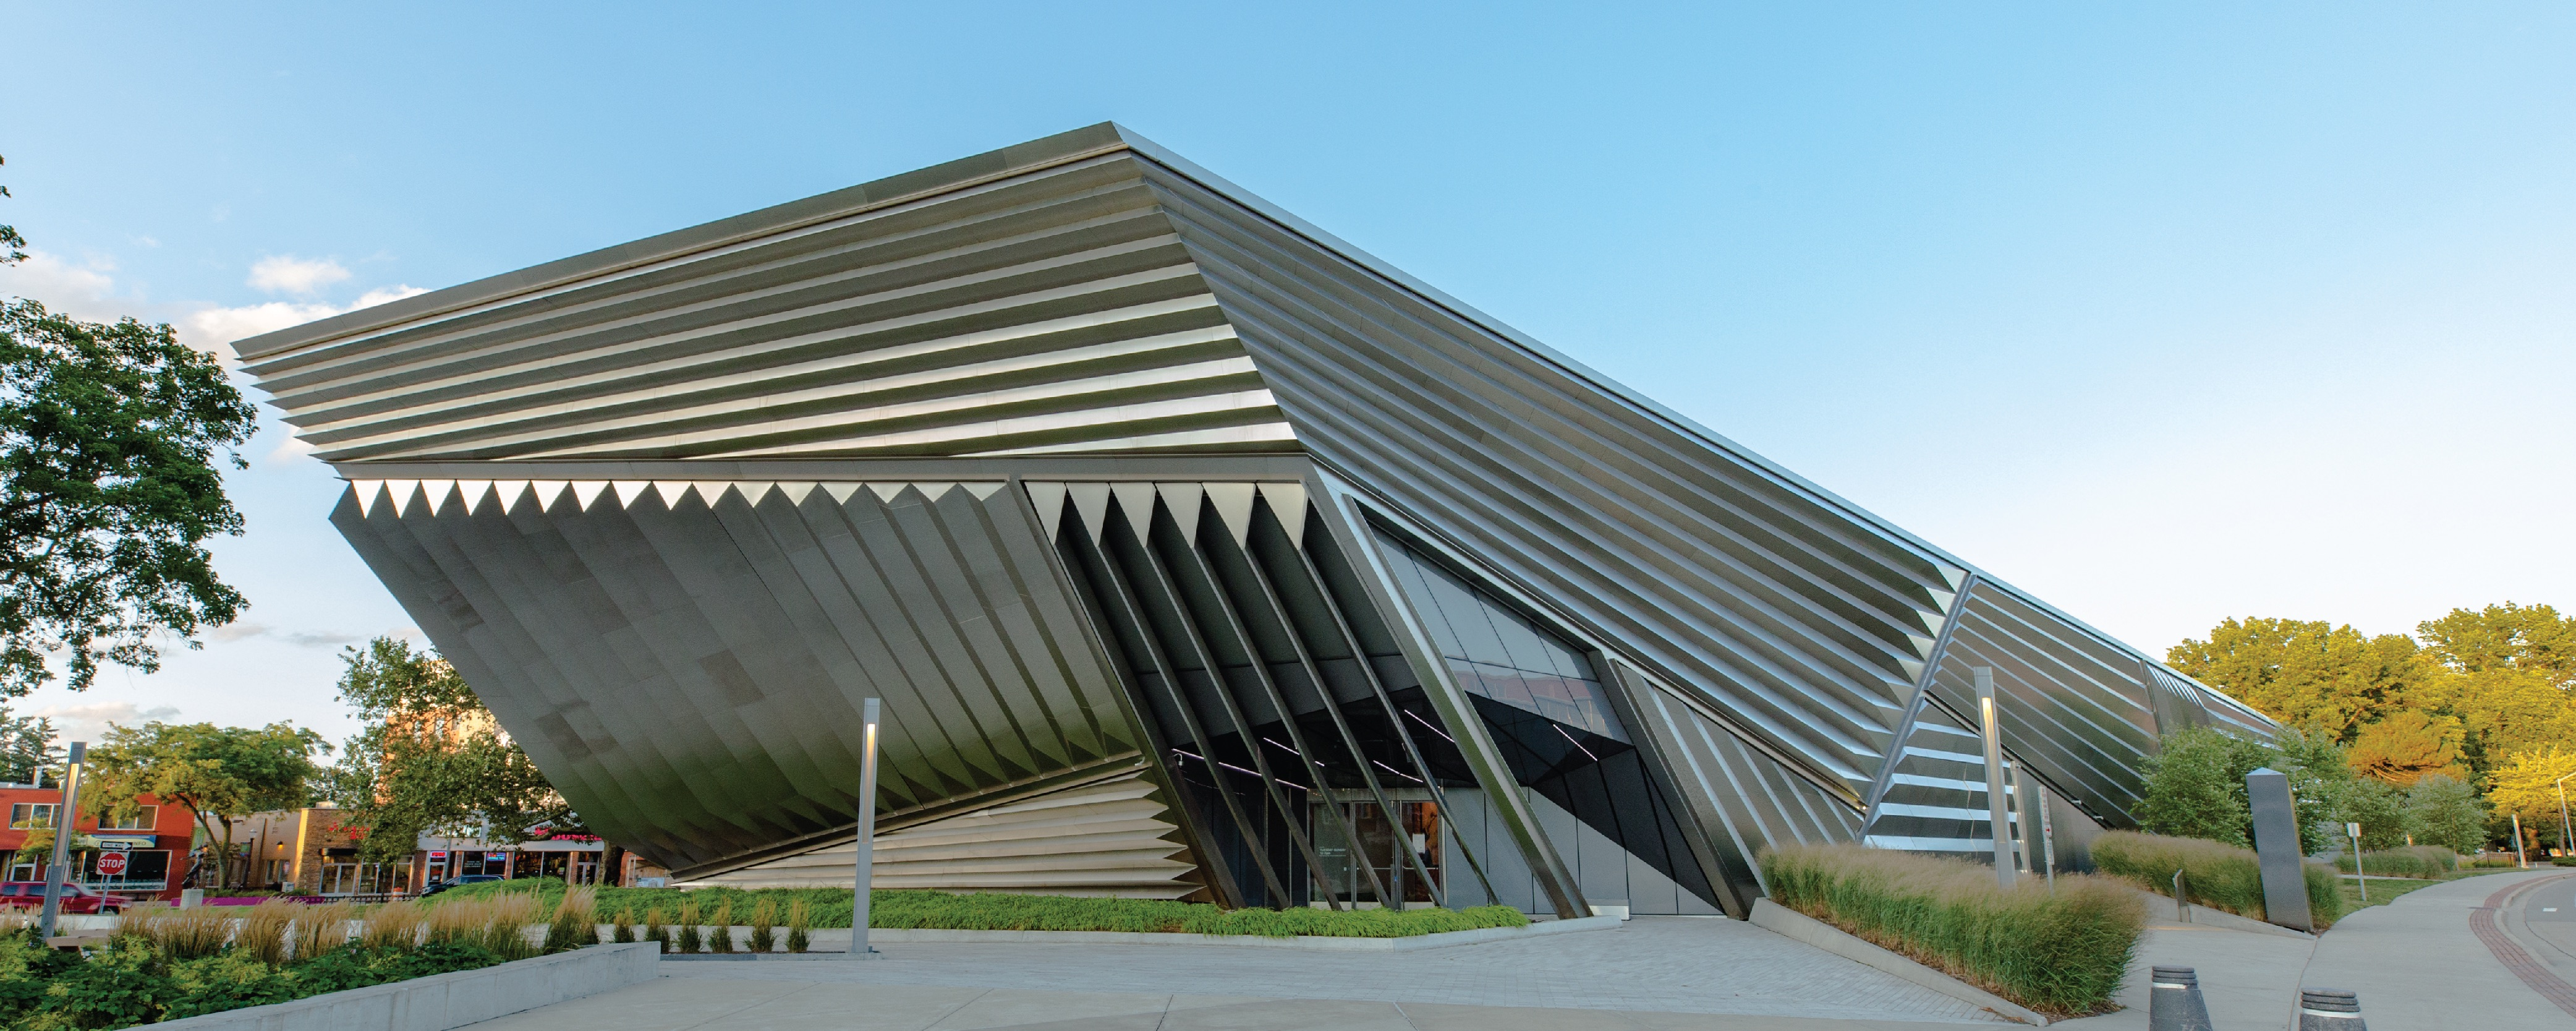 Exterior of the Broad Art Museum building architecture